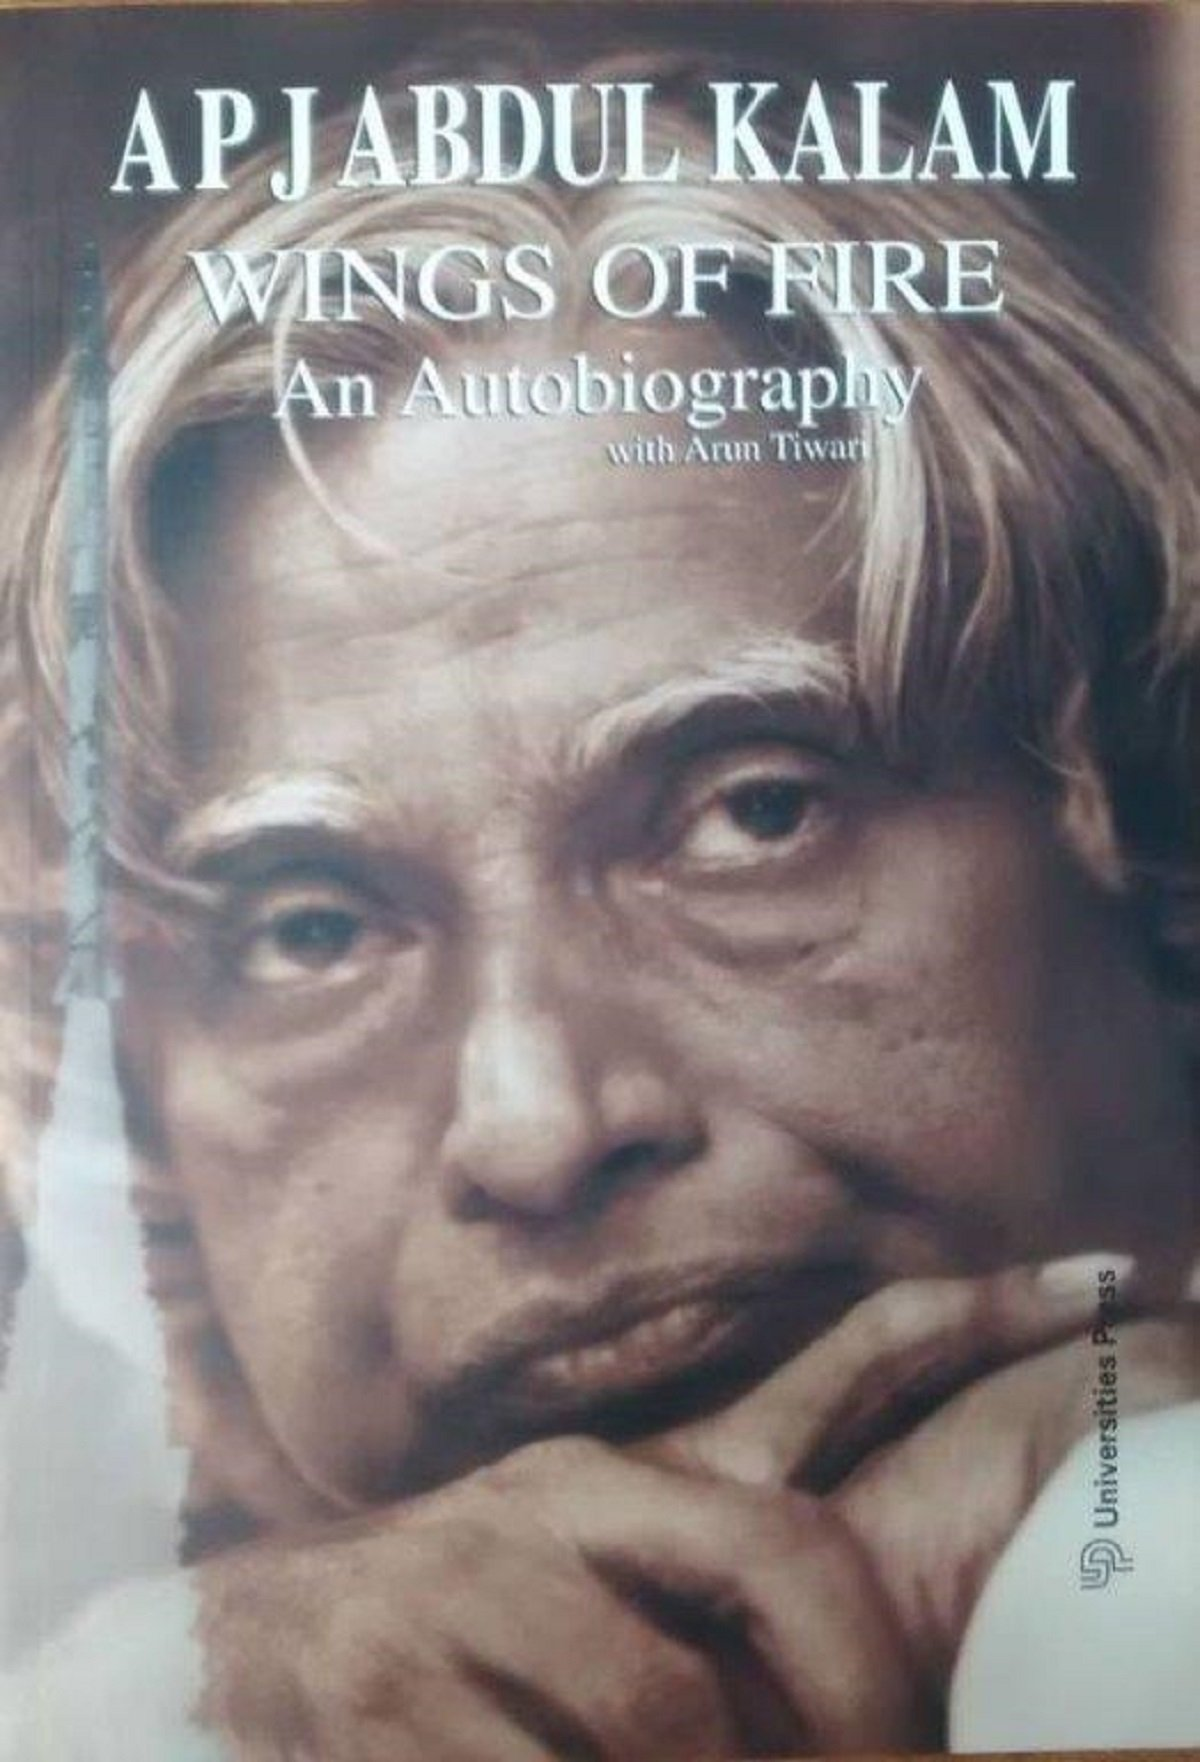 Wings of Fire- An Autobiography of APJ Abdul Kalam